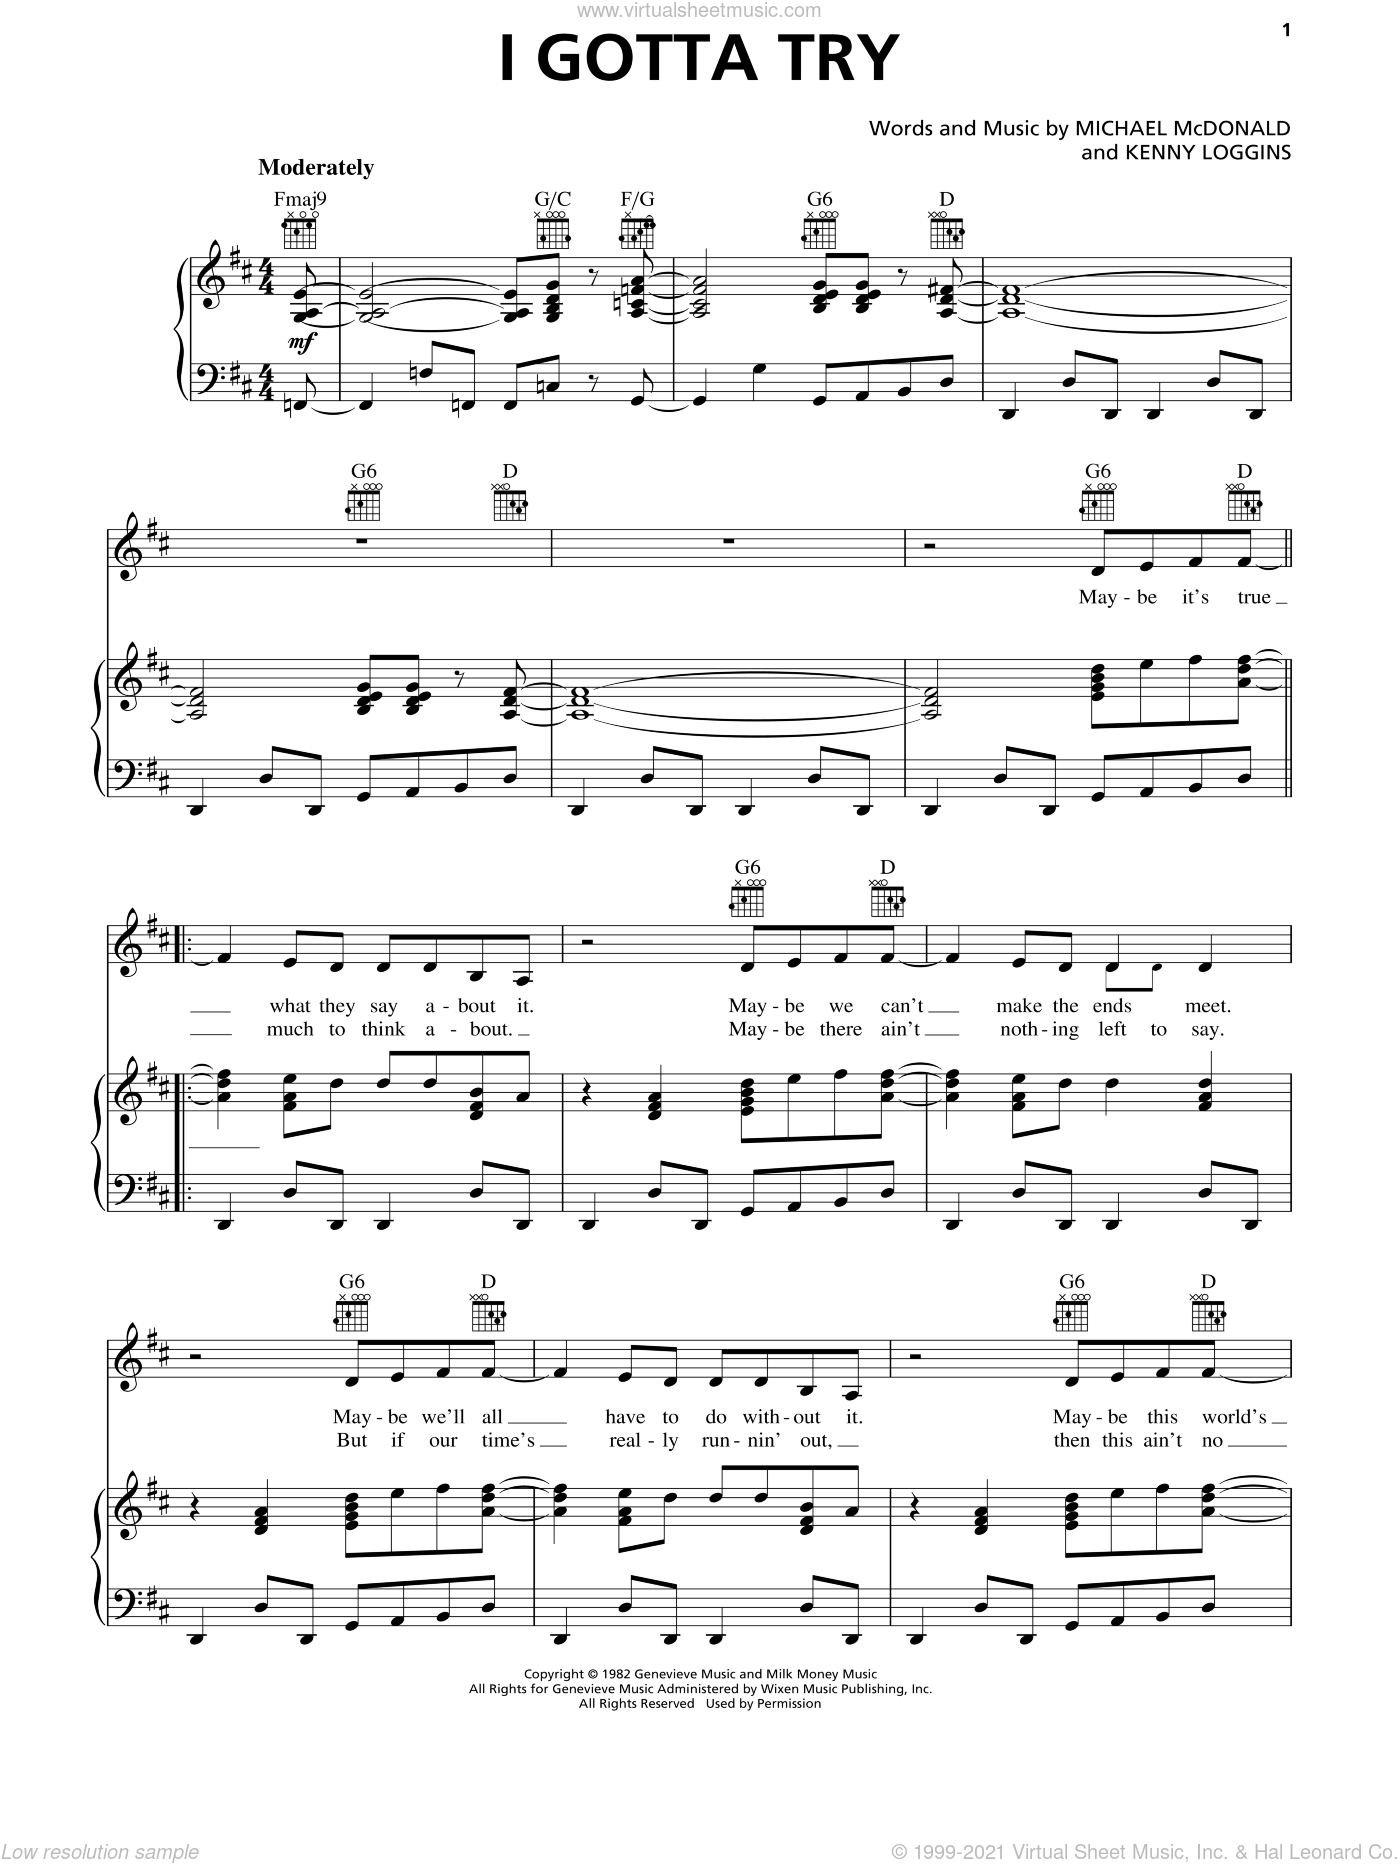 I Gotta Try sheet music for voice, piano or guitar by Michael McDonald and Kenny Loggins, intermediate skill level